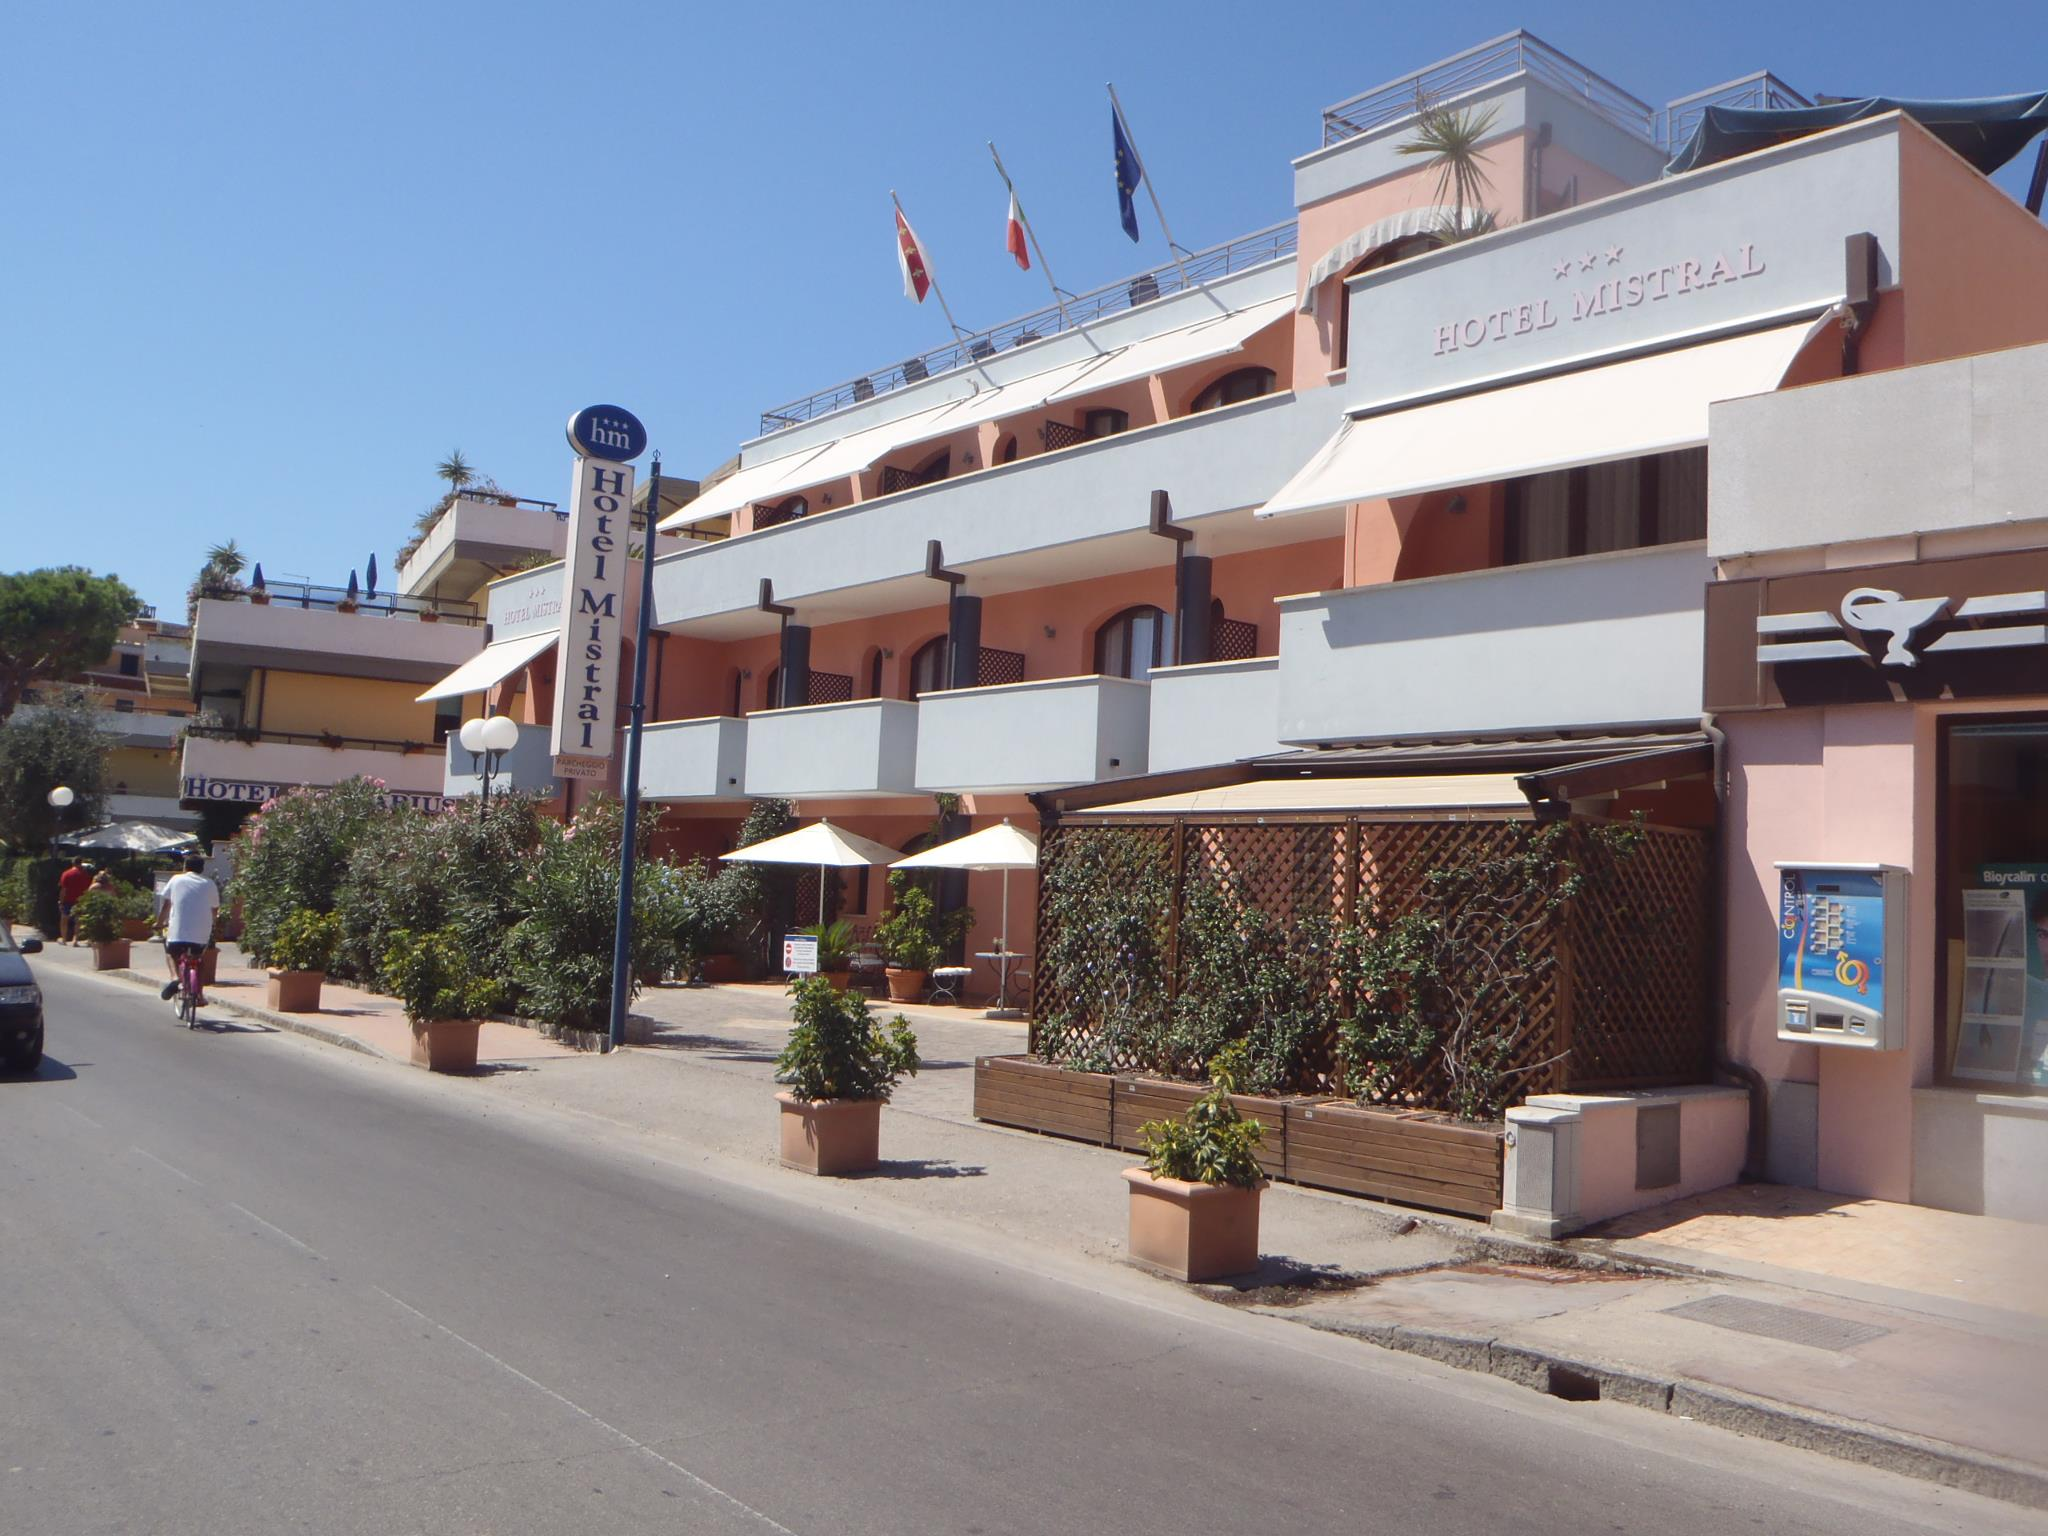 Hotel Mistral - Eingang